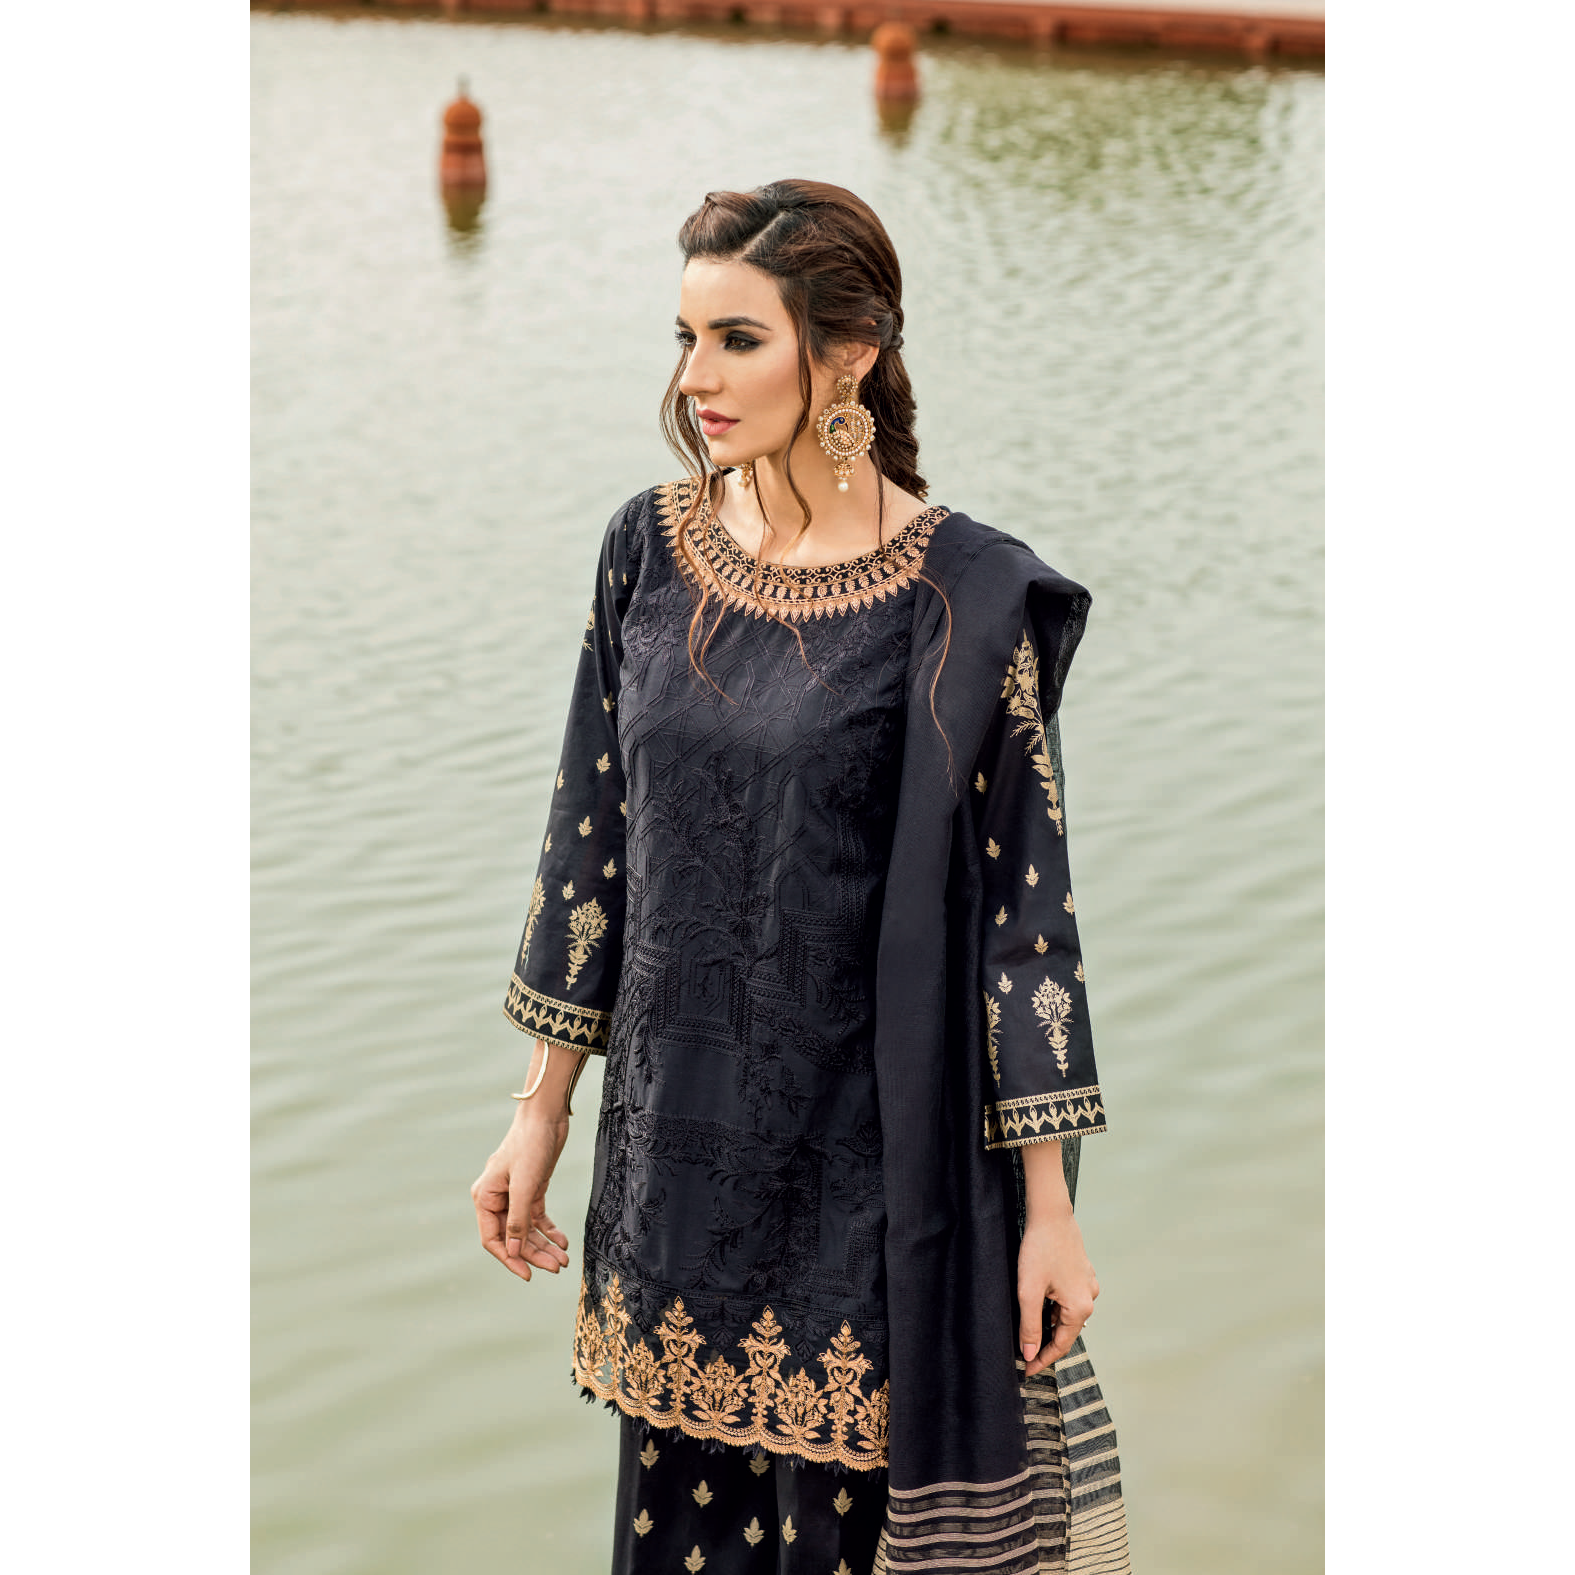 2105e4eeea0 IZNIK Pakistani Clothes UK